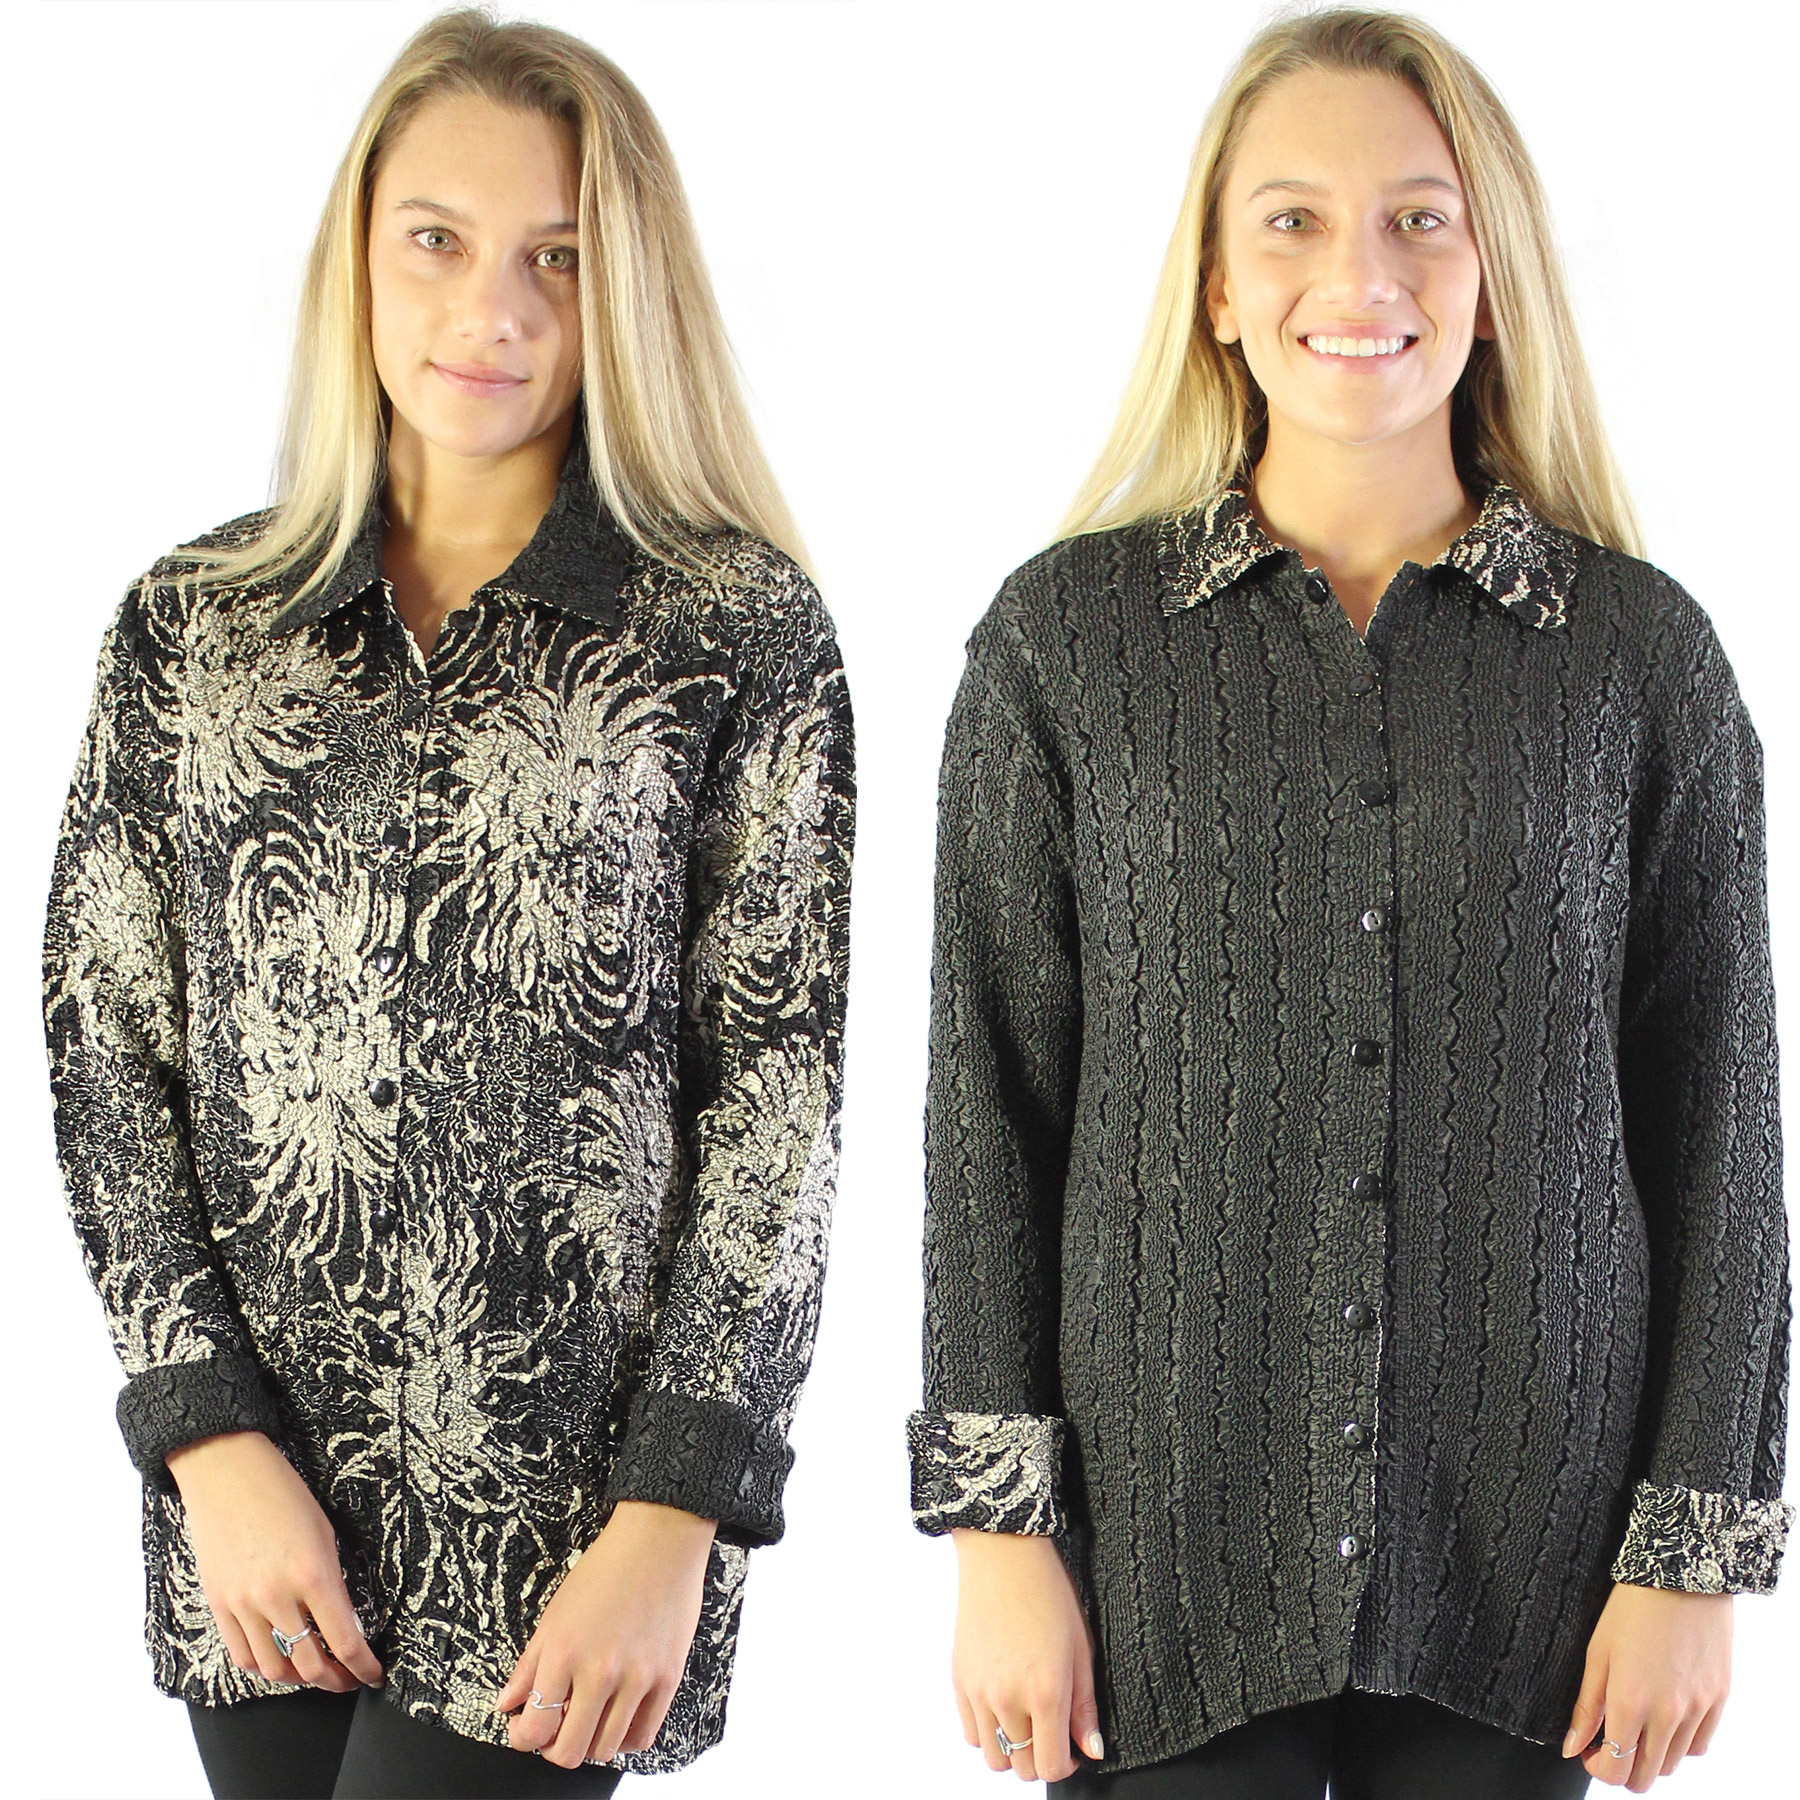 Magic Crush - Reversible Jackets - Abstract Flowers Black-Tan reverses to Solid Black